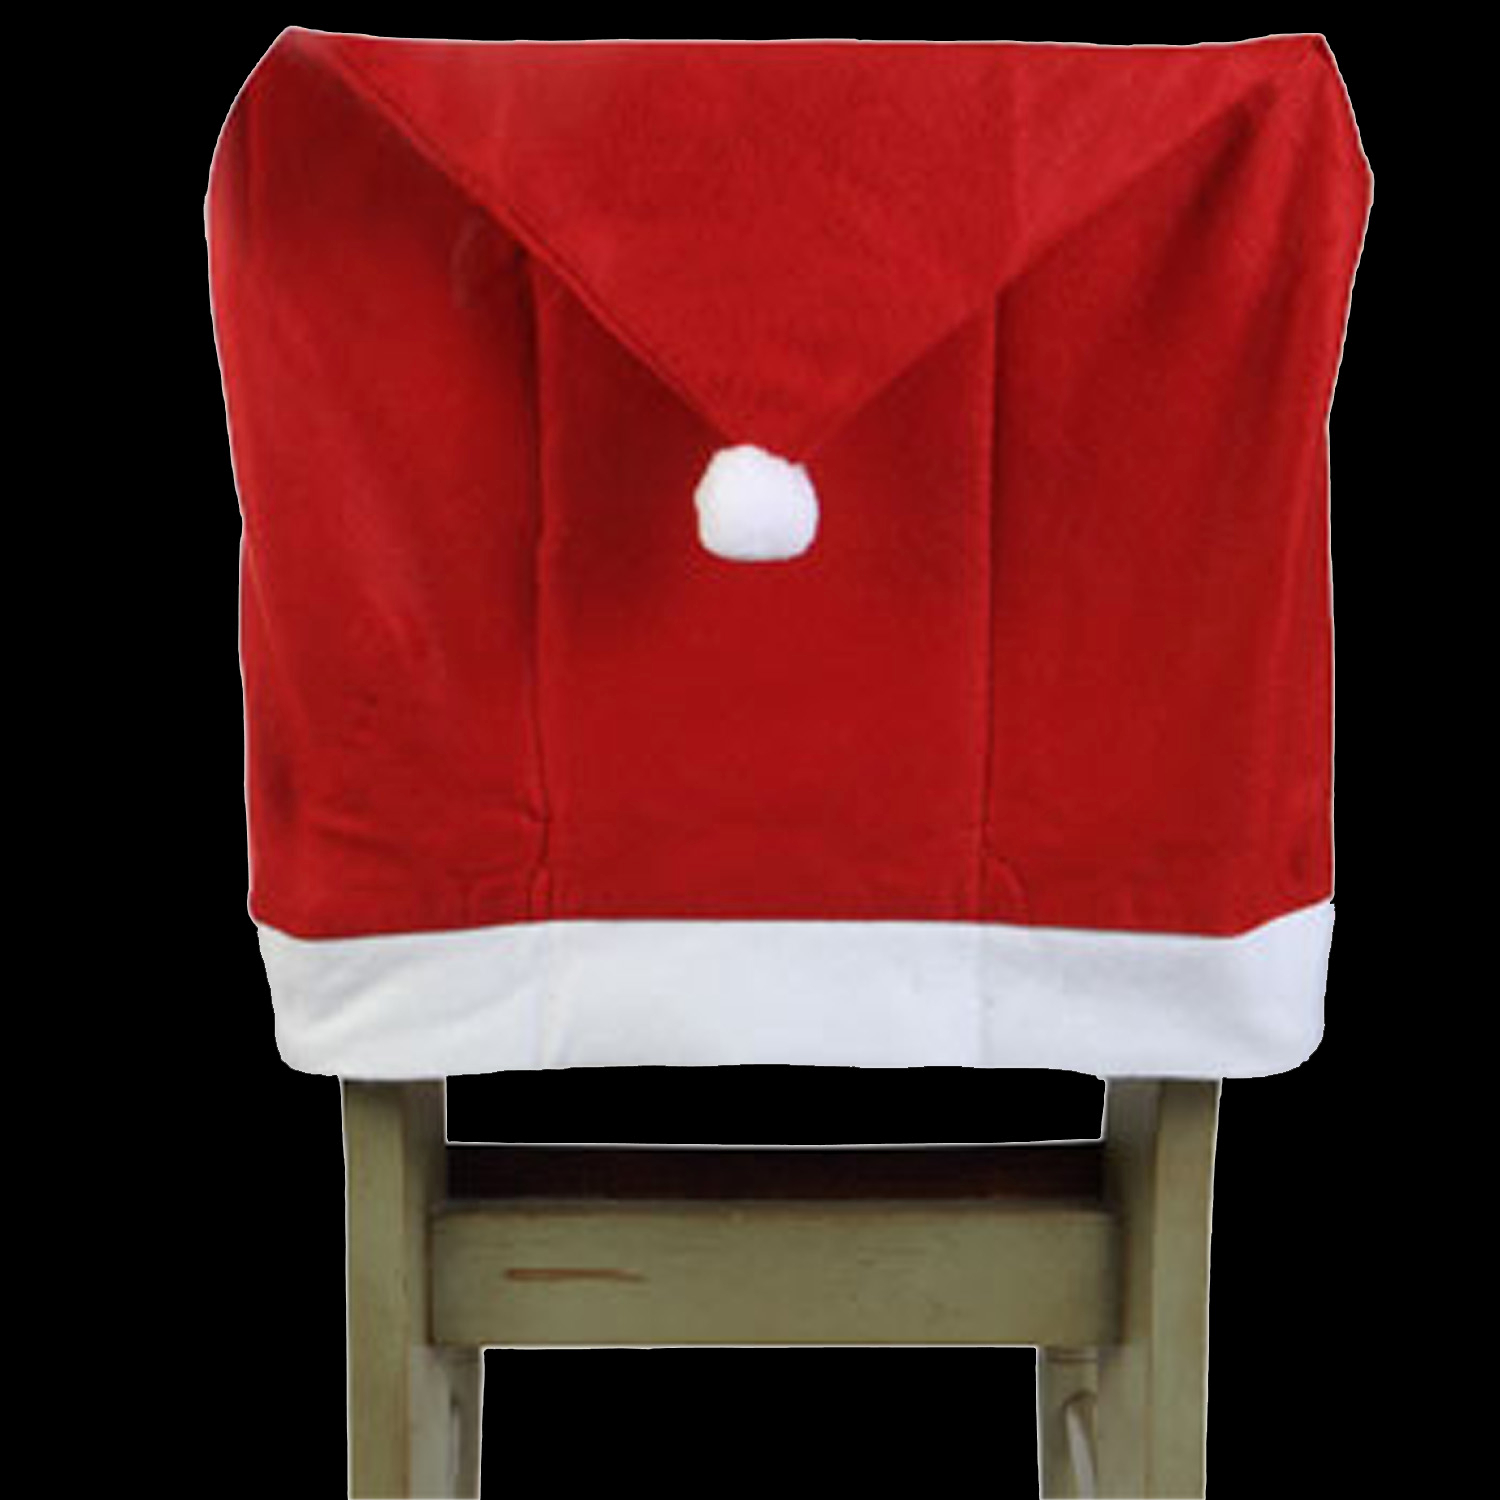 christmas red santa hat cap chair cover holiday party decoration